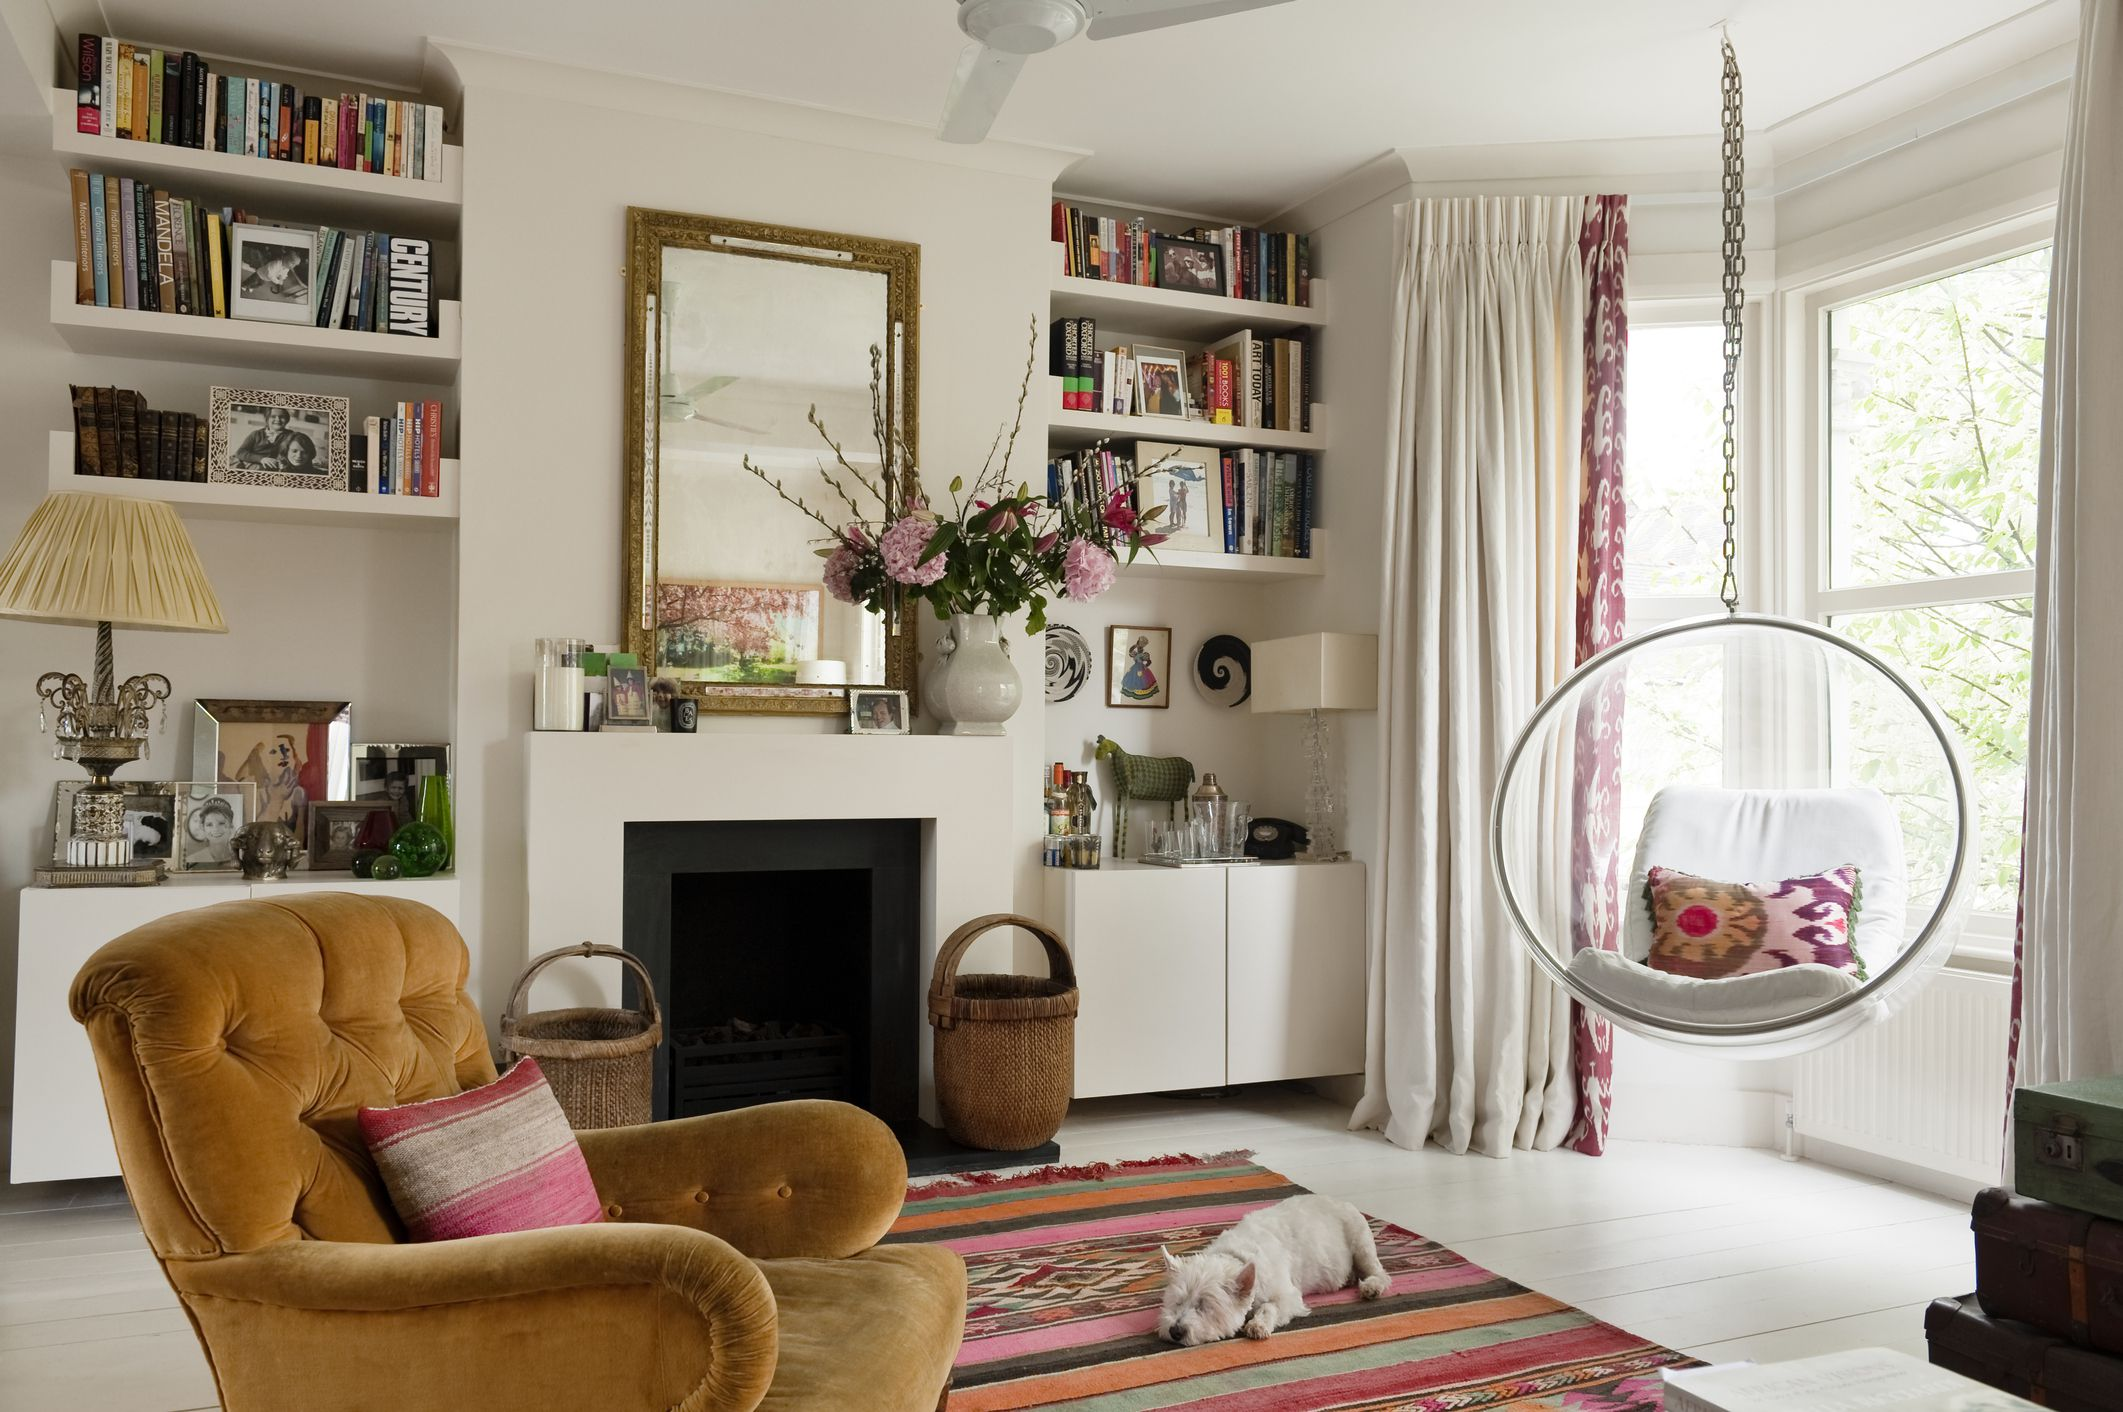 Decorating mistakes you 39 ve probably made for Apartment design mistakes